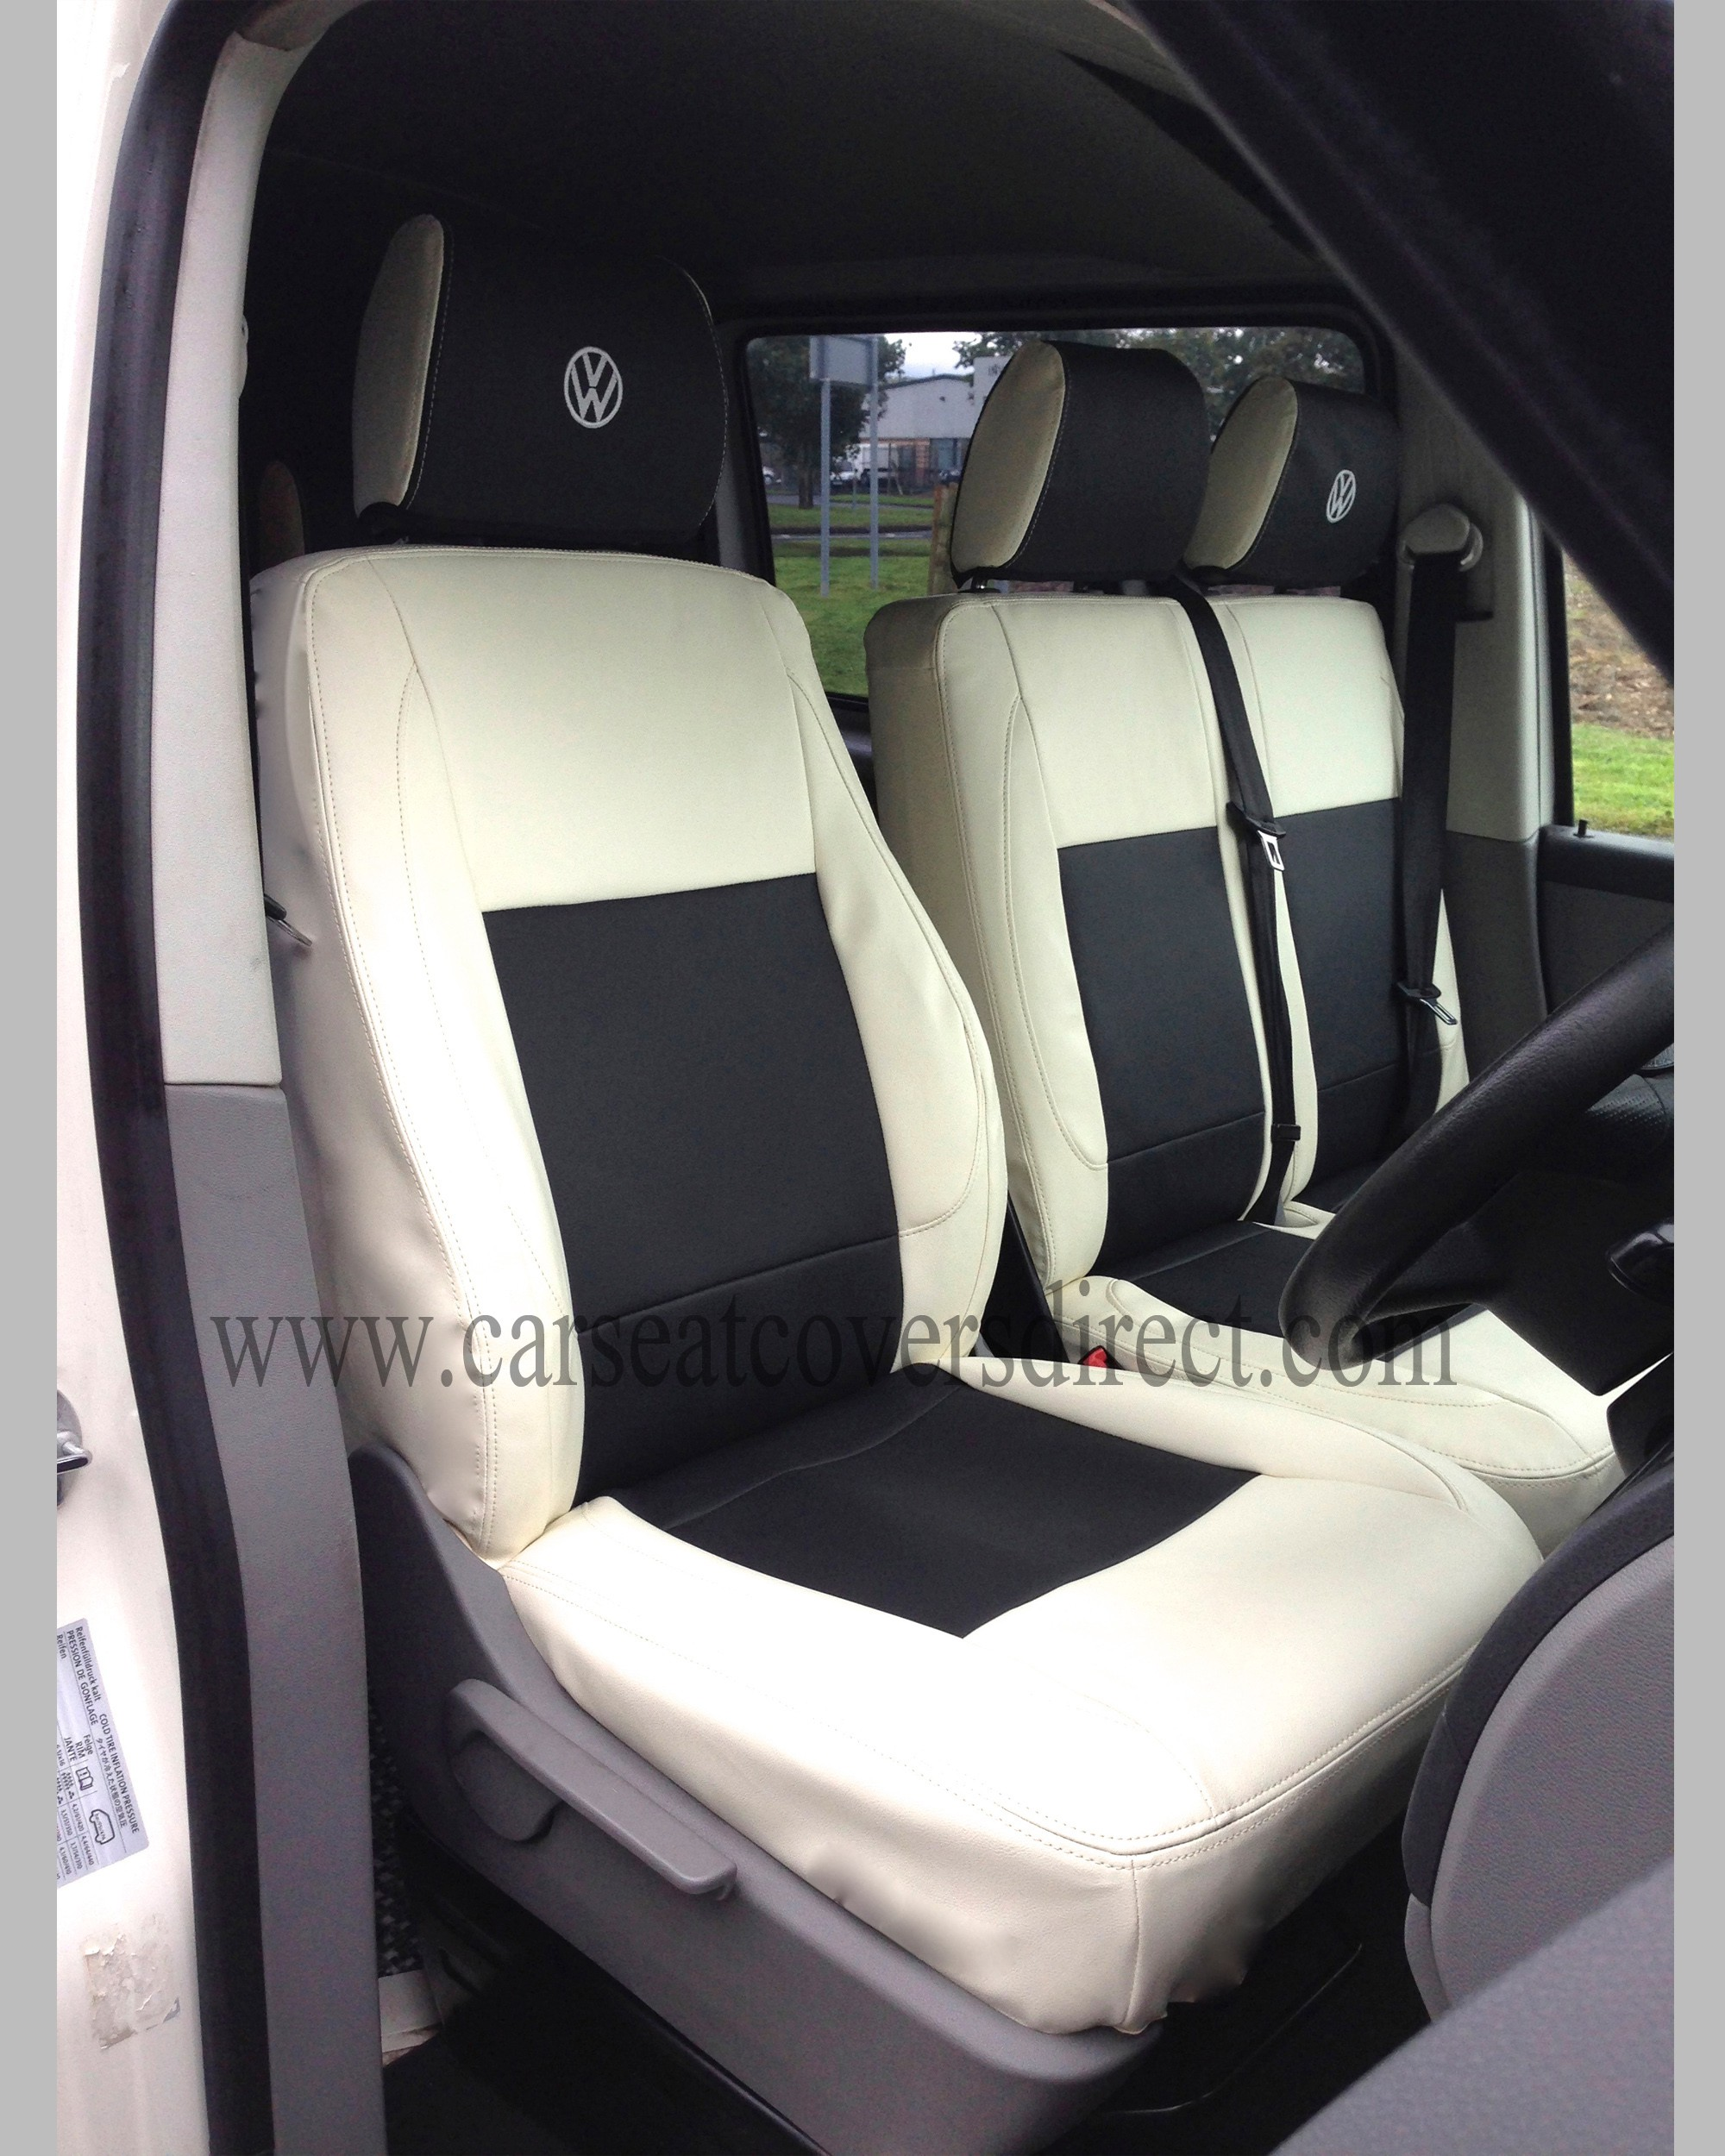 VW Transporter T5 white and black seat covers